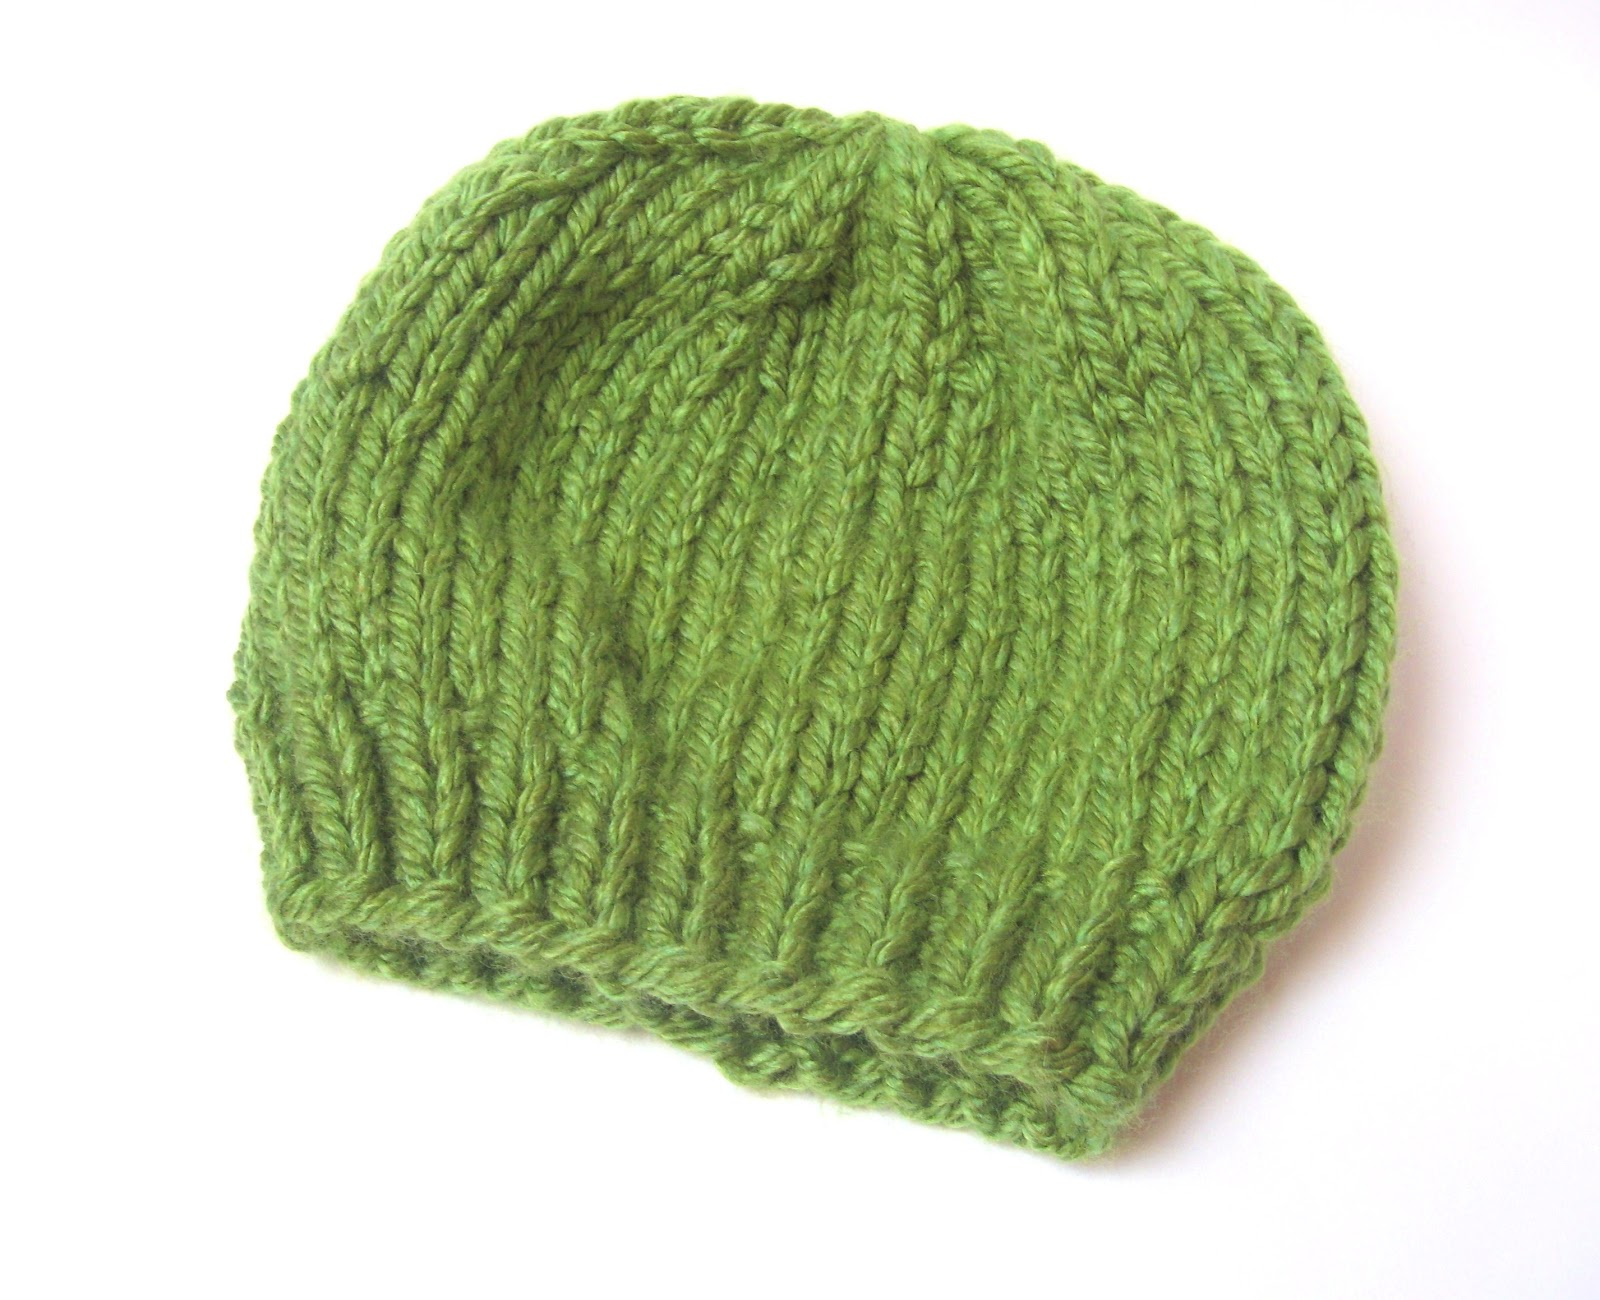 Free Knitting Pattern Hat Bulky Yarn : megan E sass handknits: Free Knitting Pattern: Easy Chunky ...